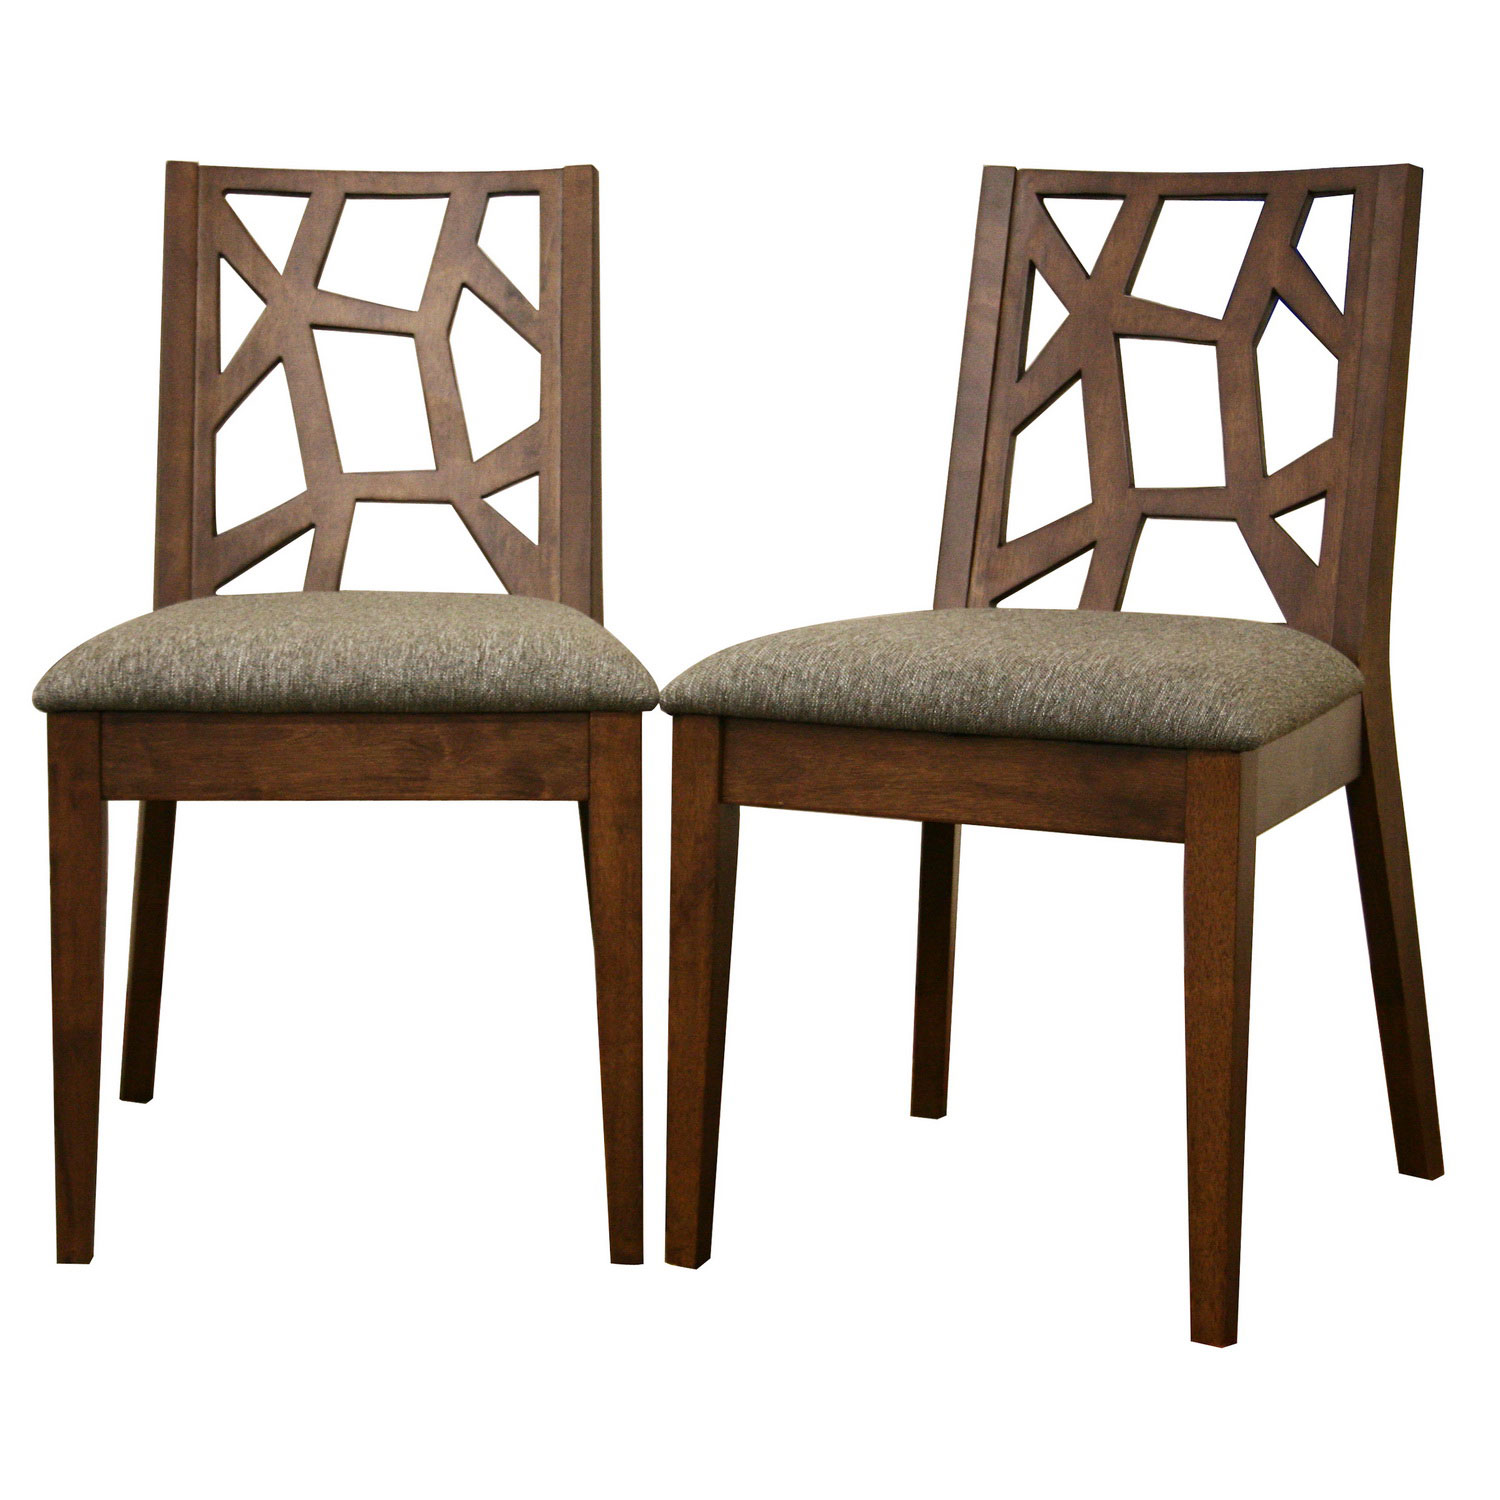 Modern Wooden Dining Chairs ~ Rubberwood dining chairs set of in